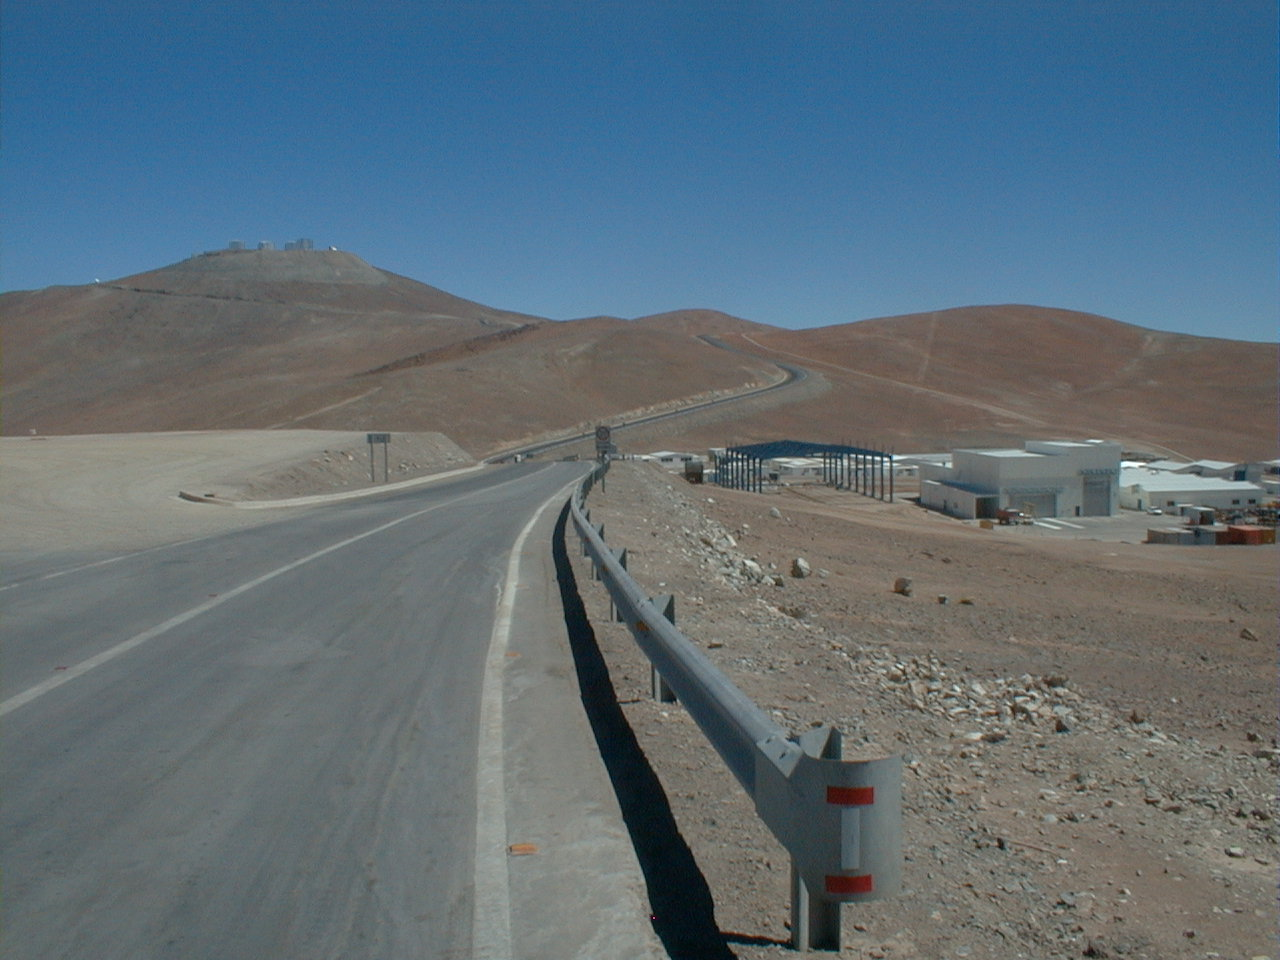 At the bottom of the Mount Paranal